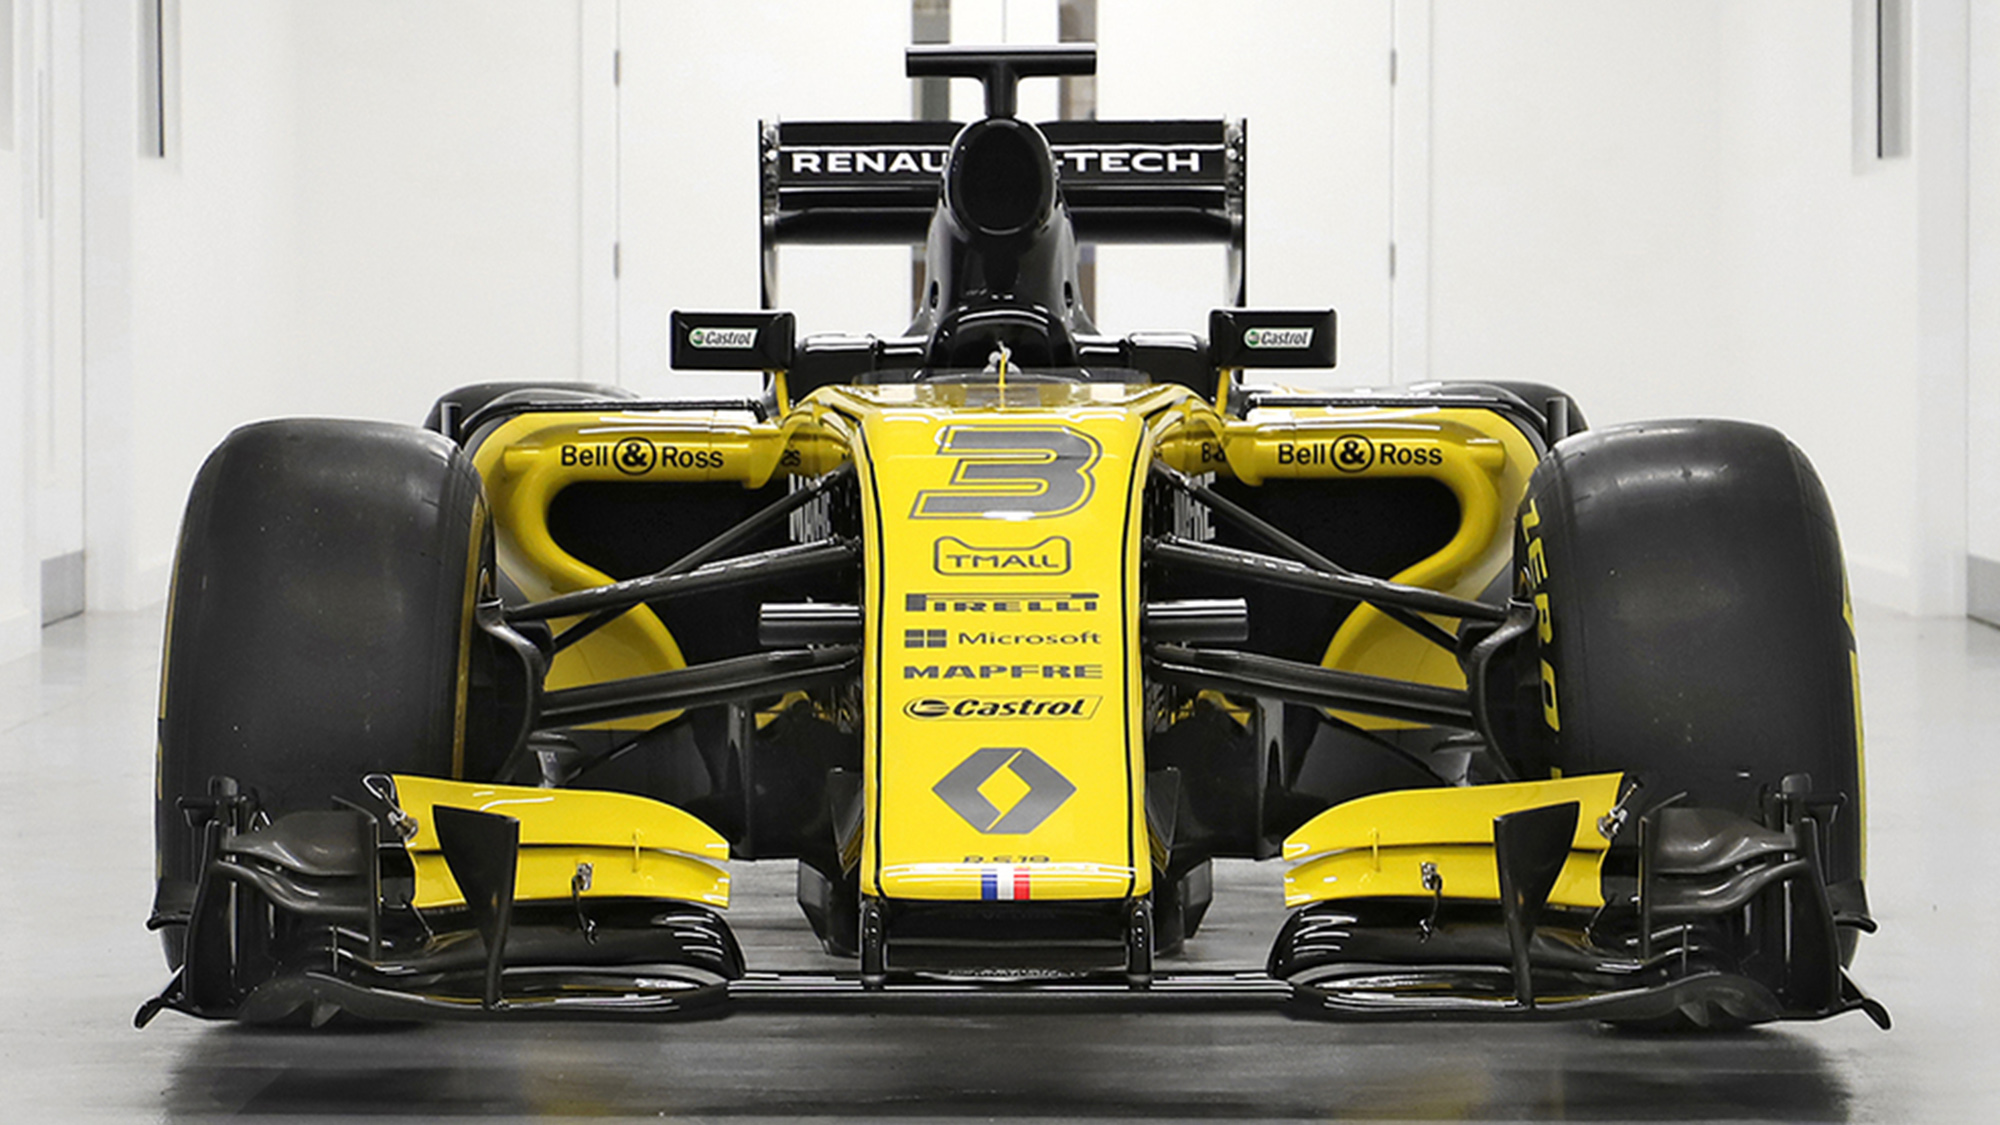 Rare chance to buy hybrid F1 car, as bidding opens on 2016 Renault